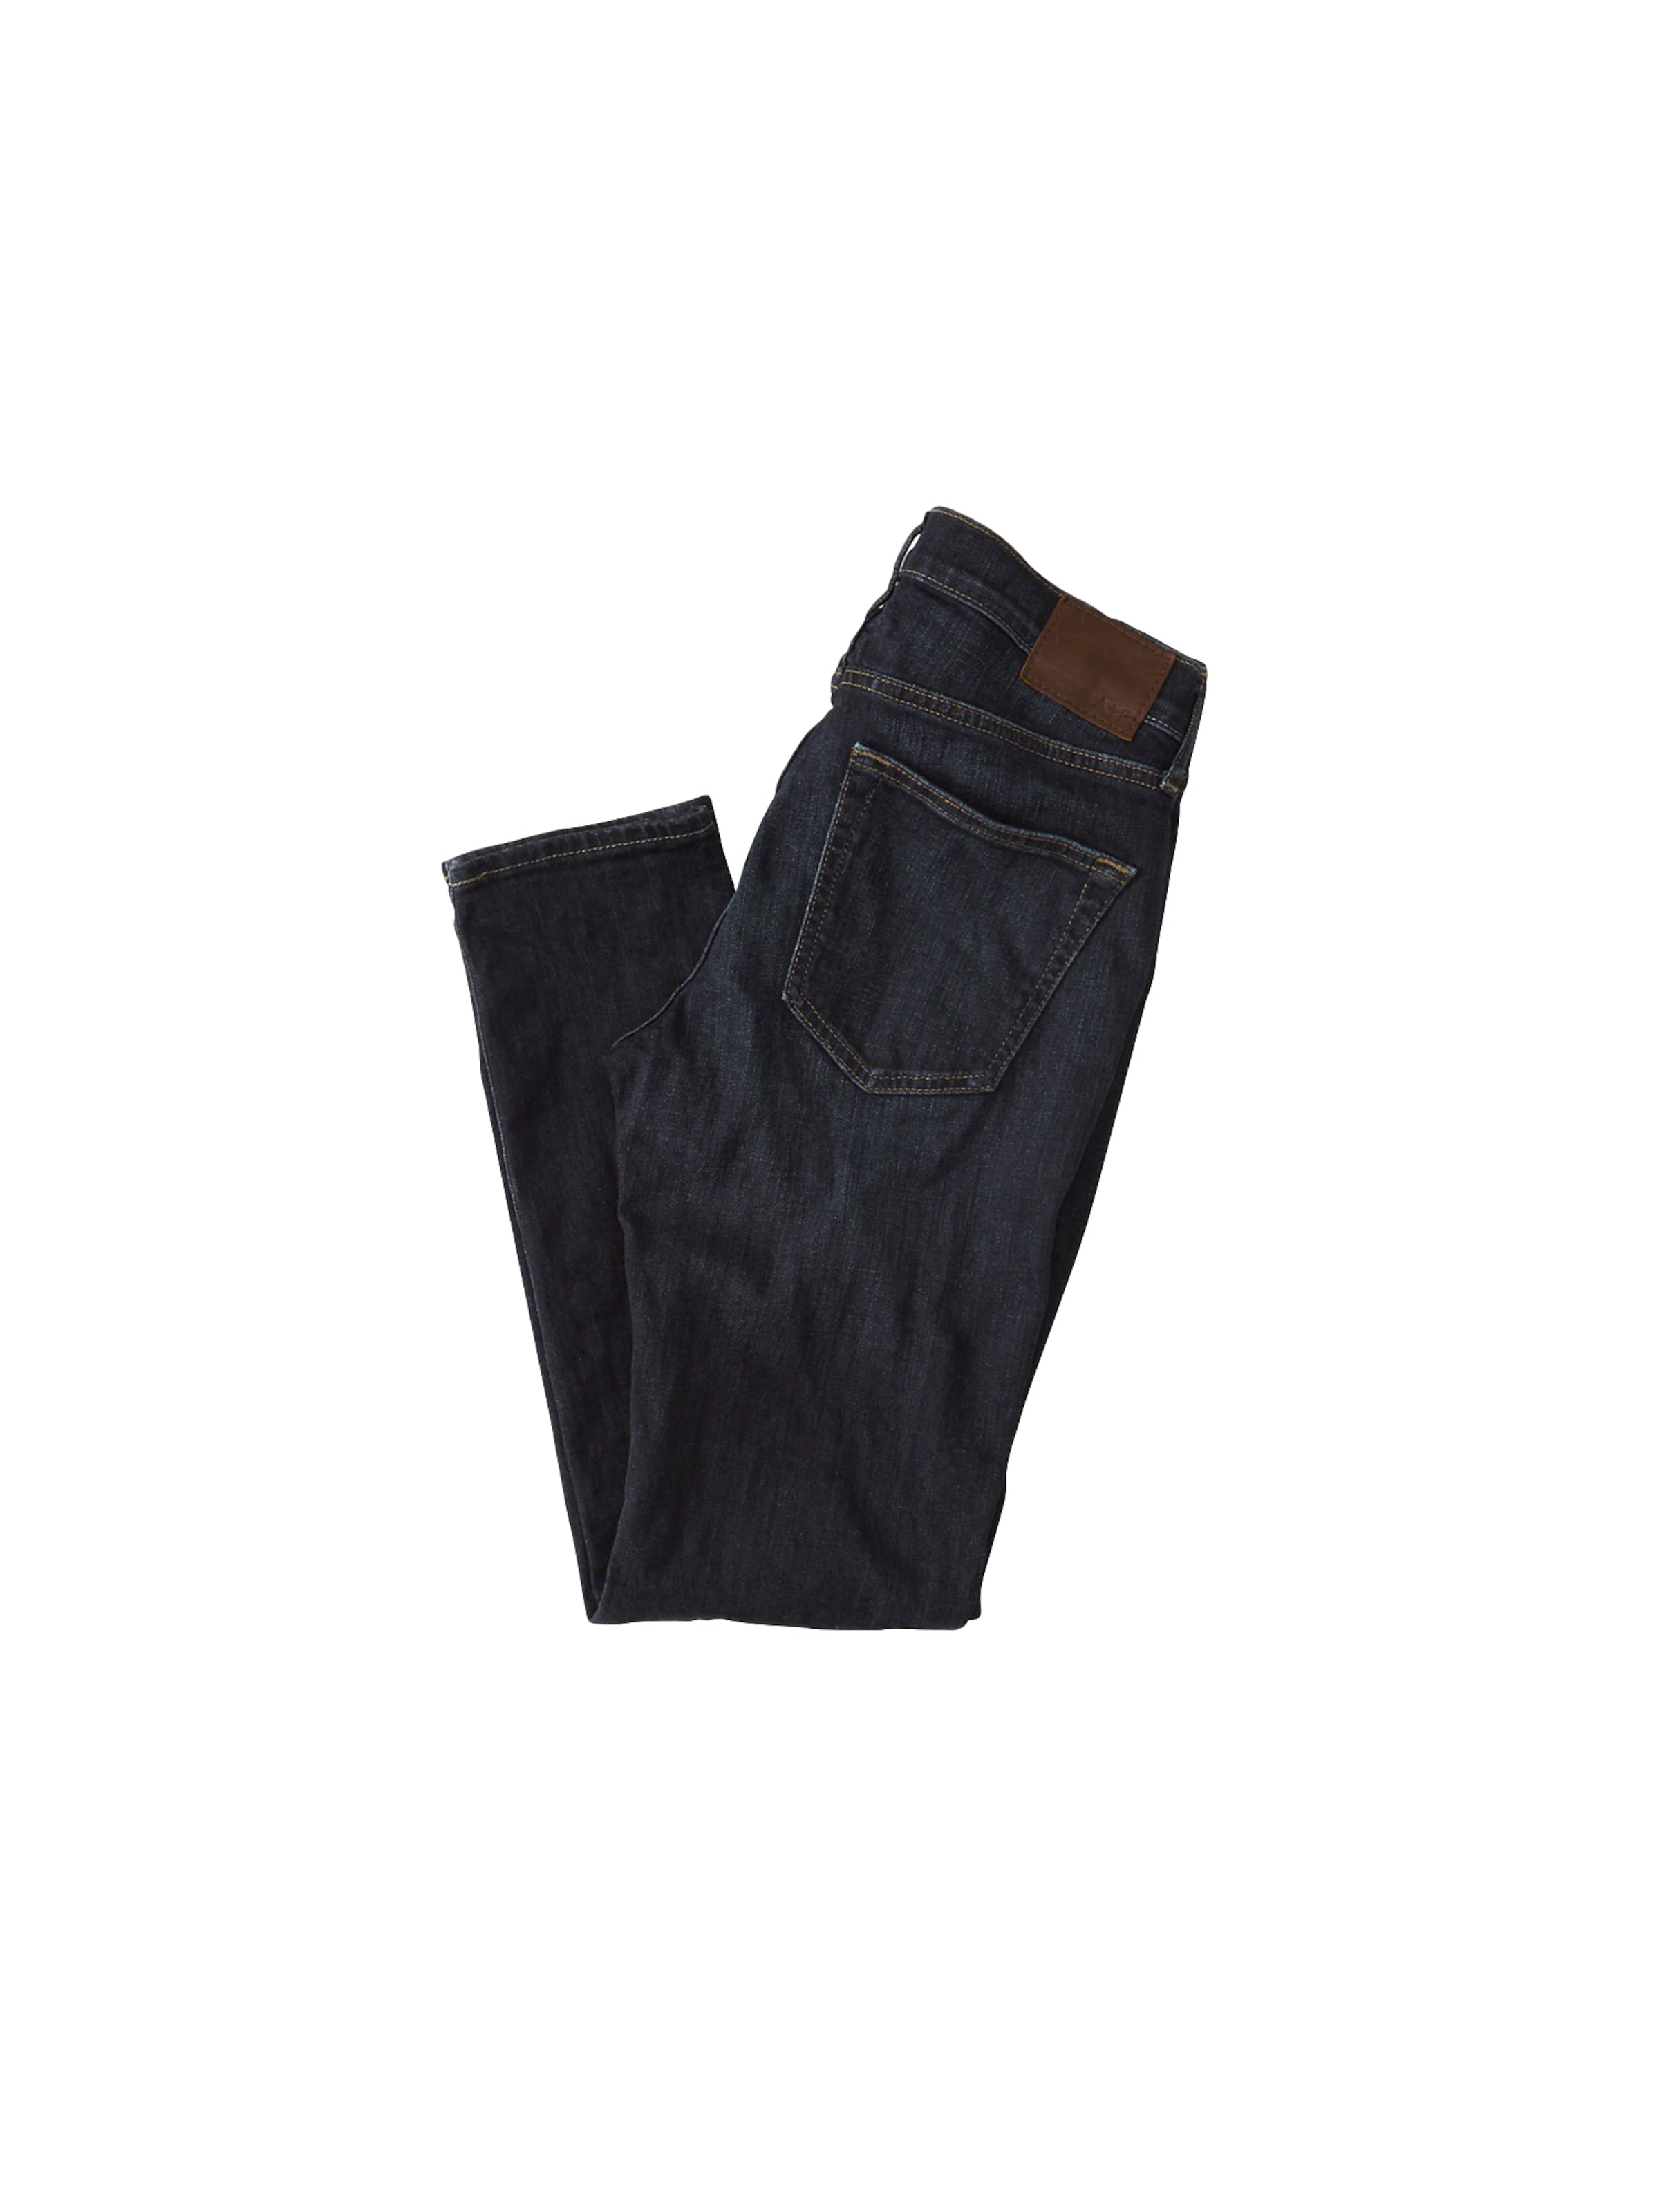 Denim In Black Abercrombieamp; Jeans Fitch rtQCshd